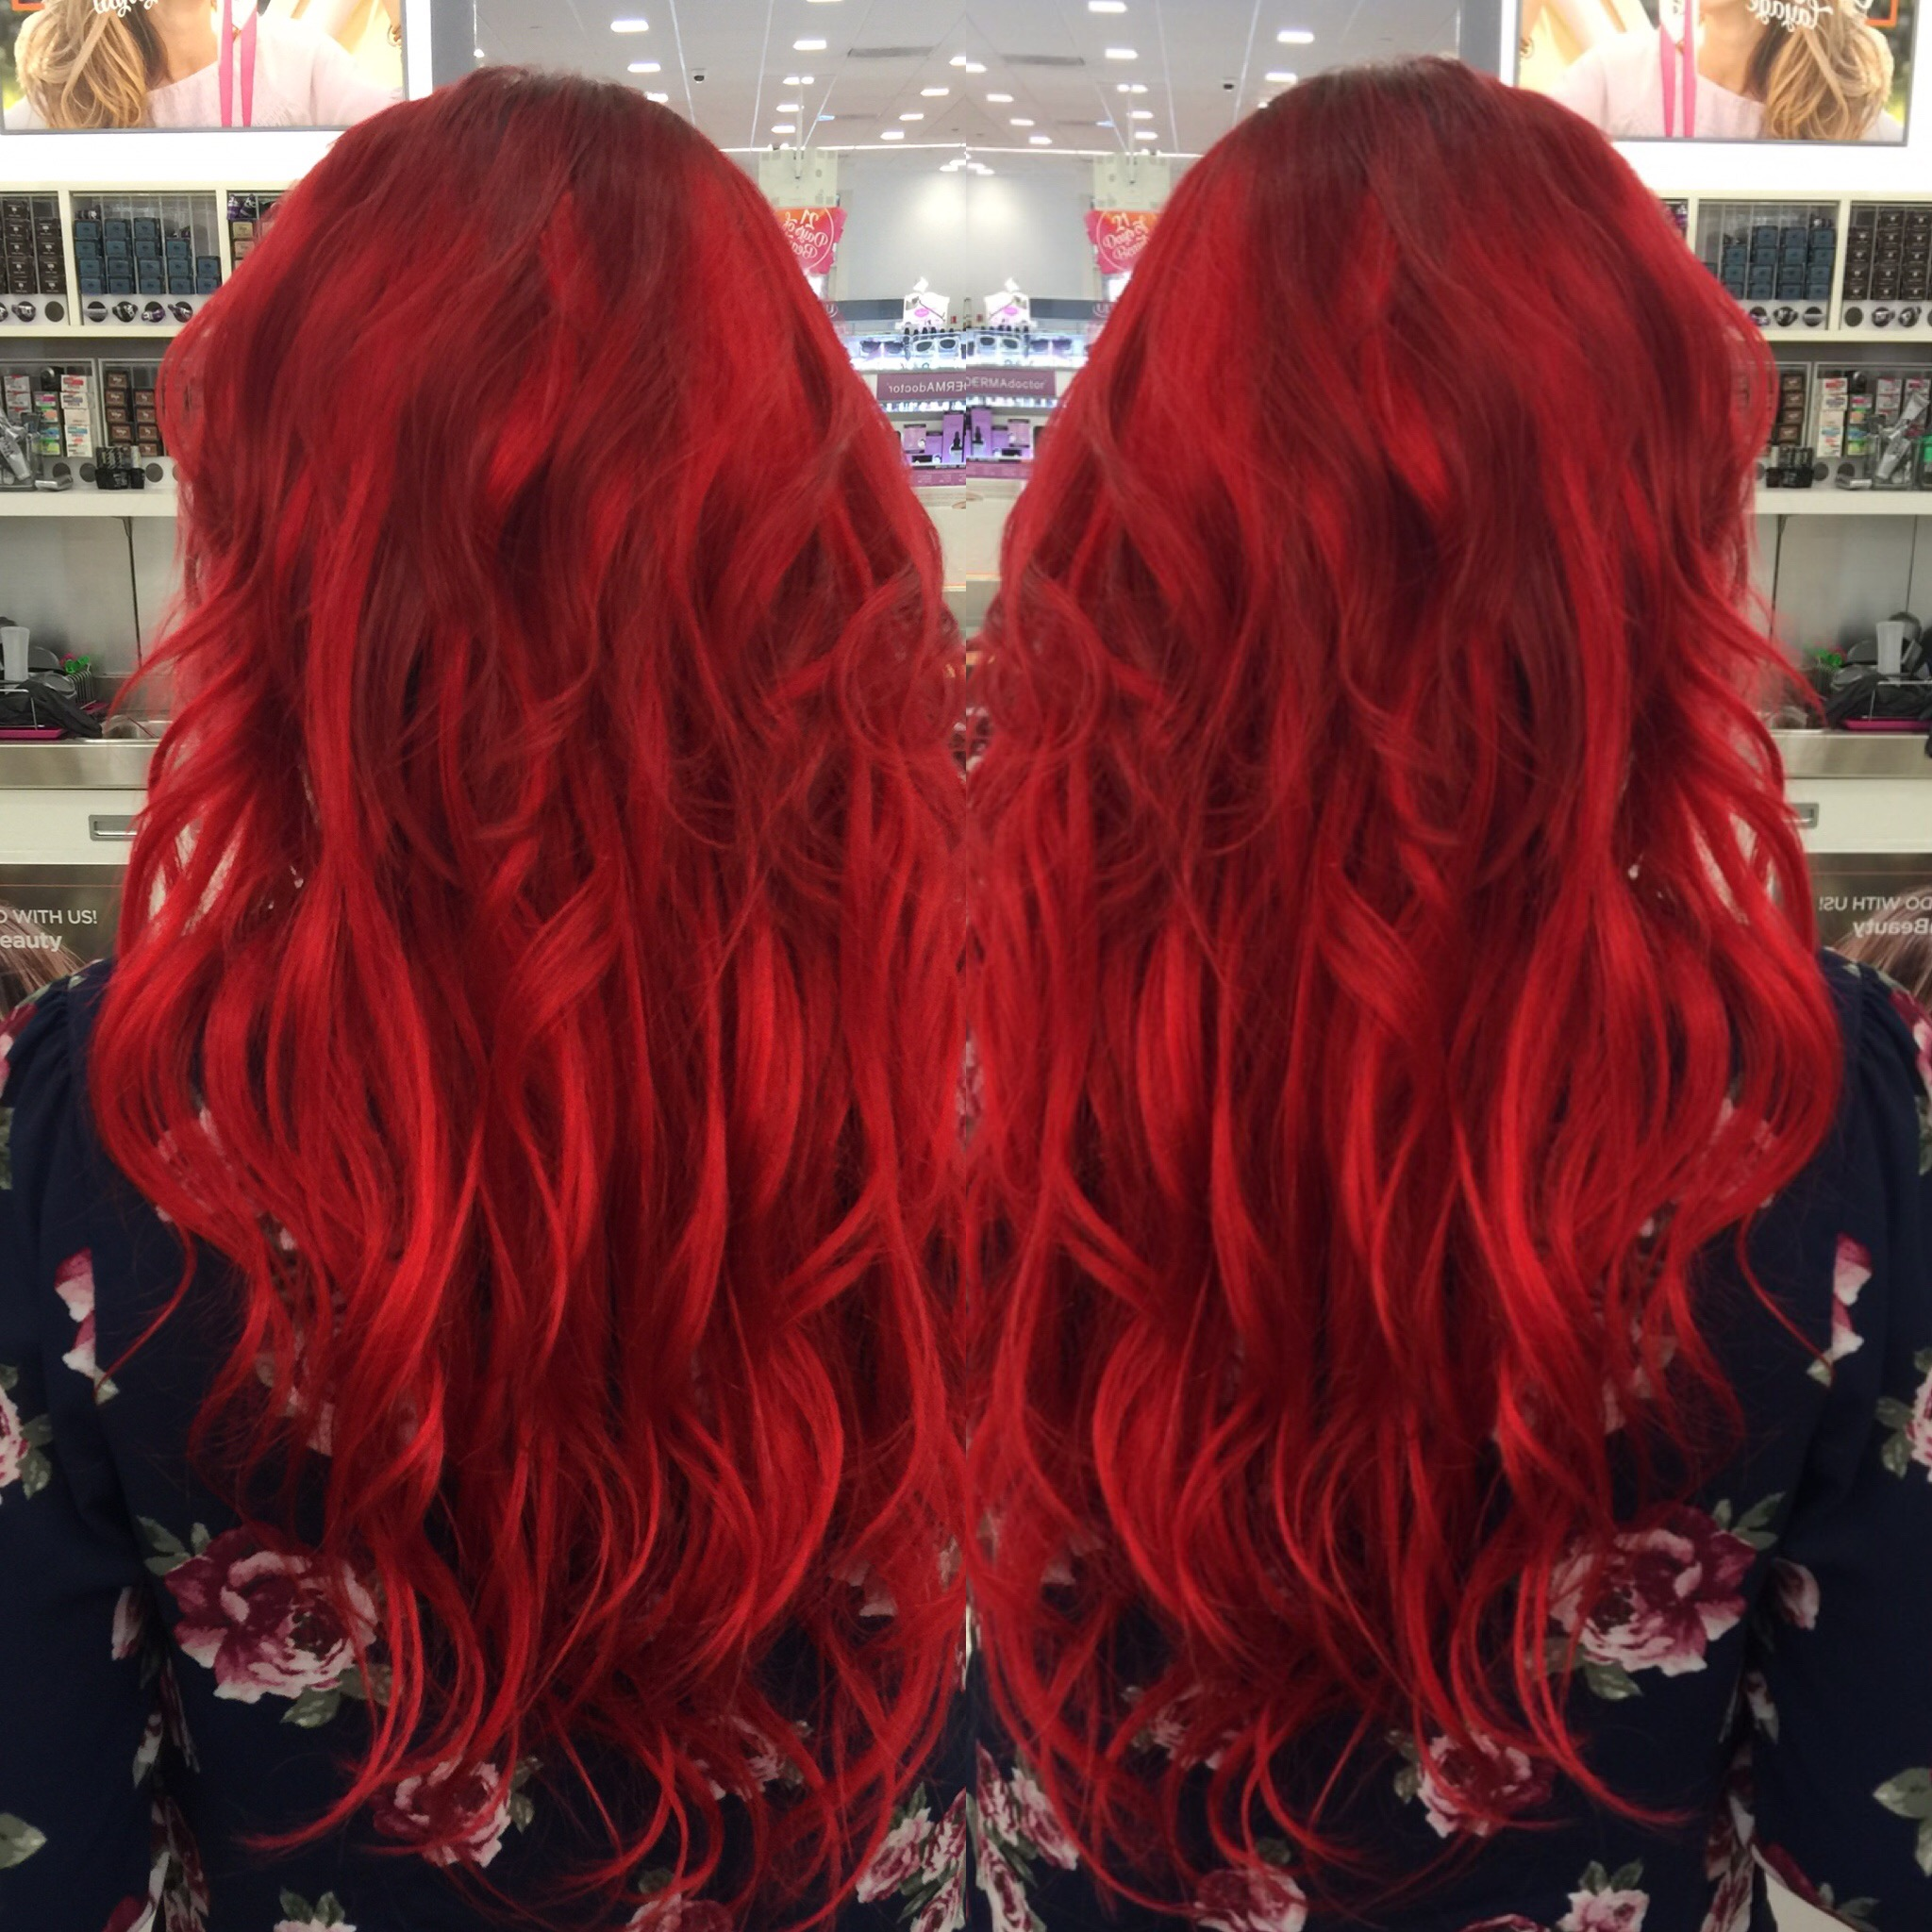 Pravana Vivids Red Hair Confessions Of A Cosmetologistconfessions